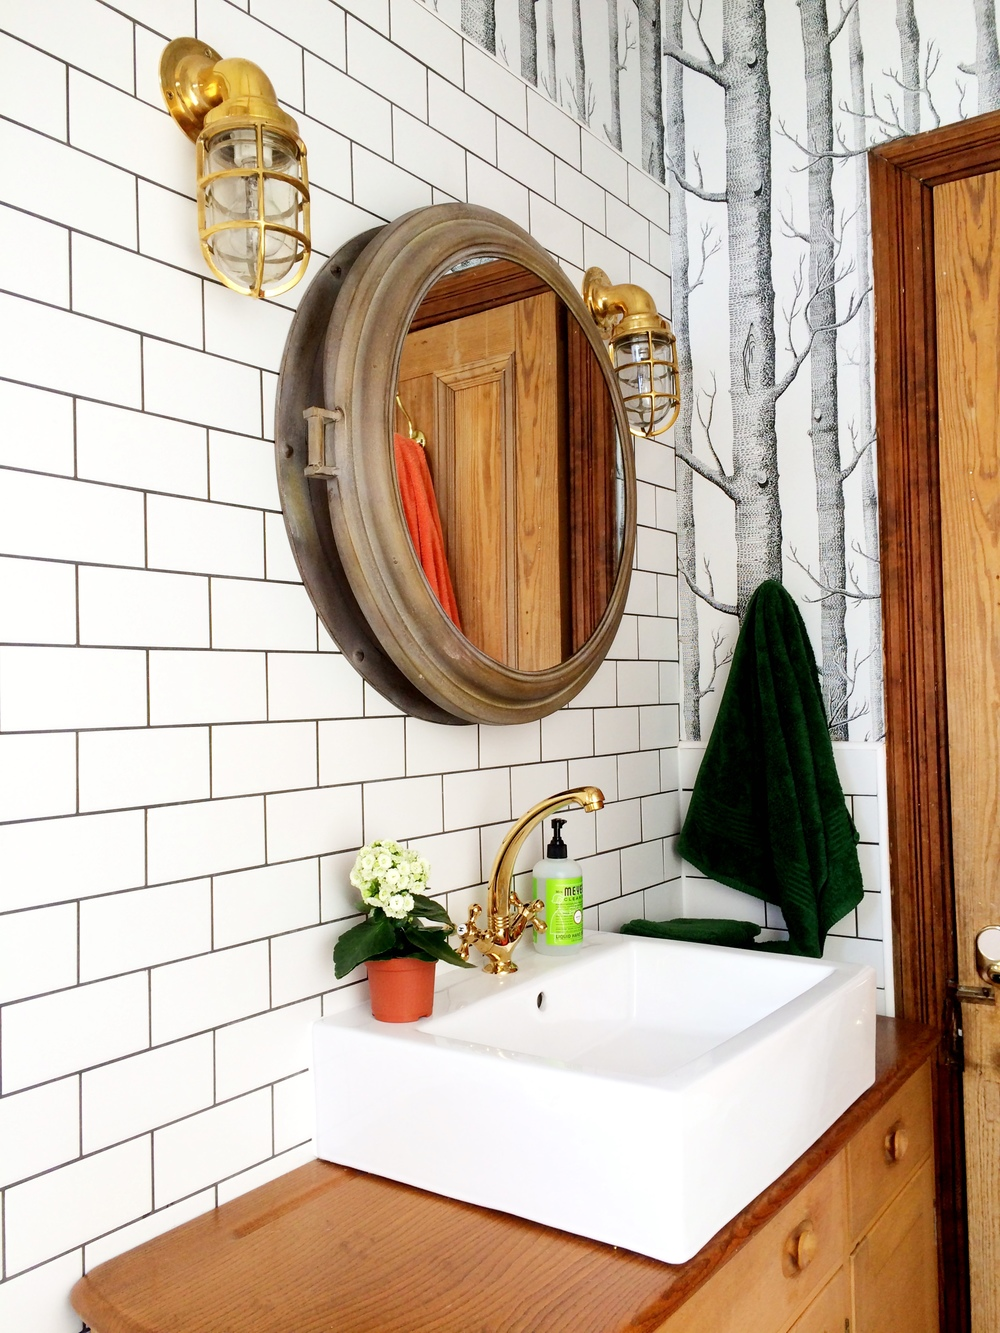 Home / apartment bathroom decor; mirror; lighting; sink | Remodeled by Deborah Peterson Milne